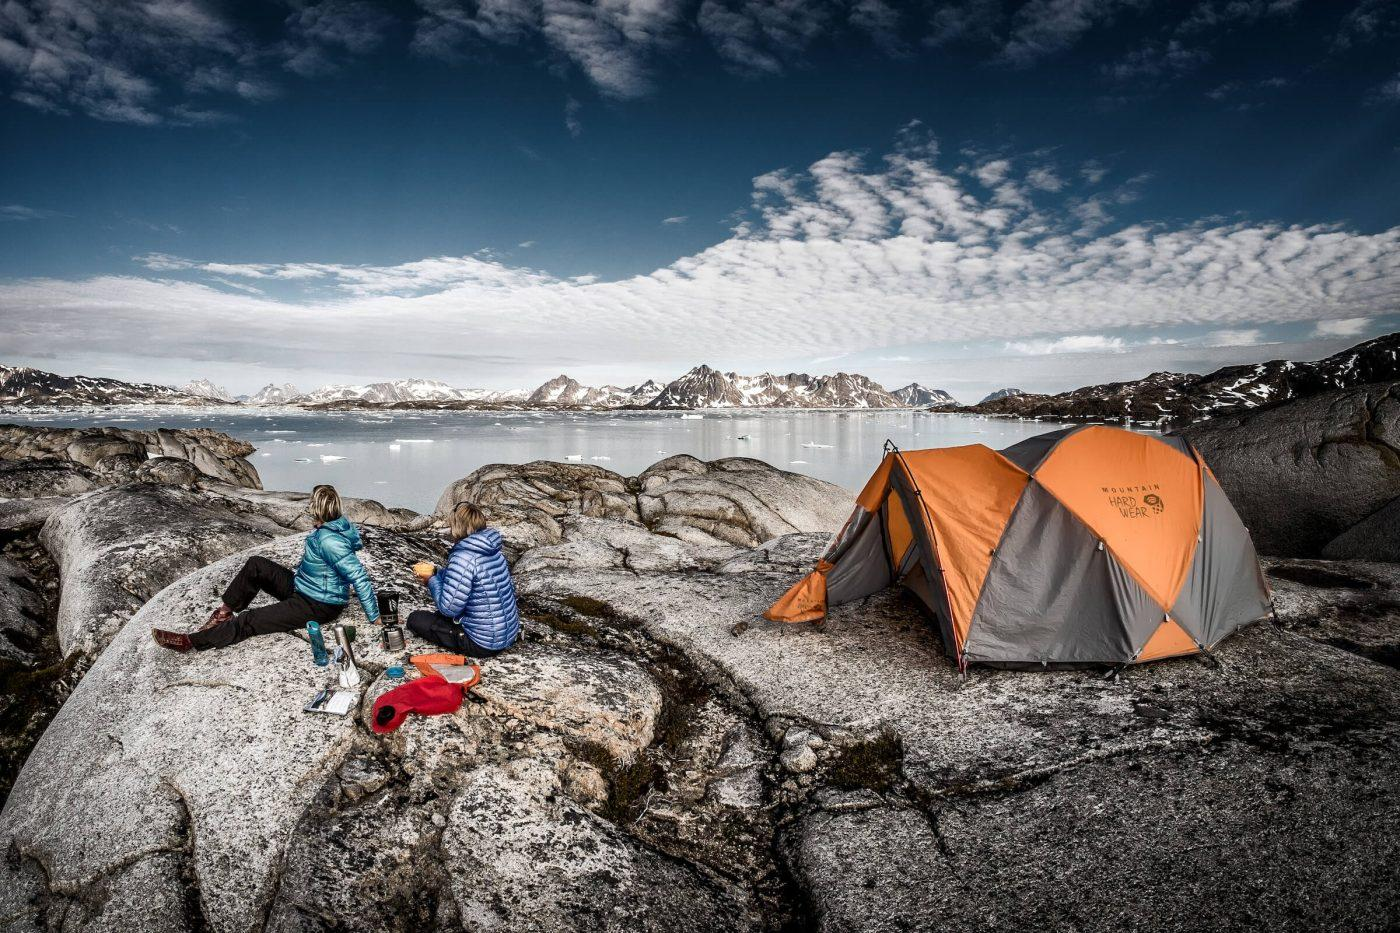 Two hikers enjoying the view from Qernertivartivit over Ammassalik Fjord in East Greenland. By Mads Pihl